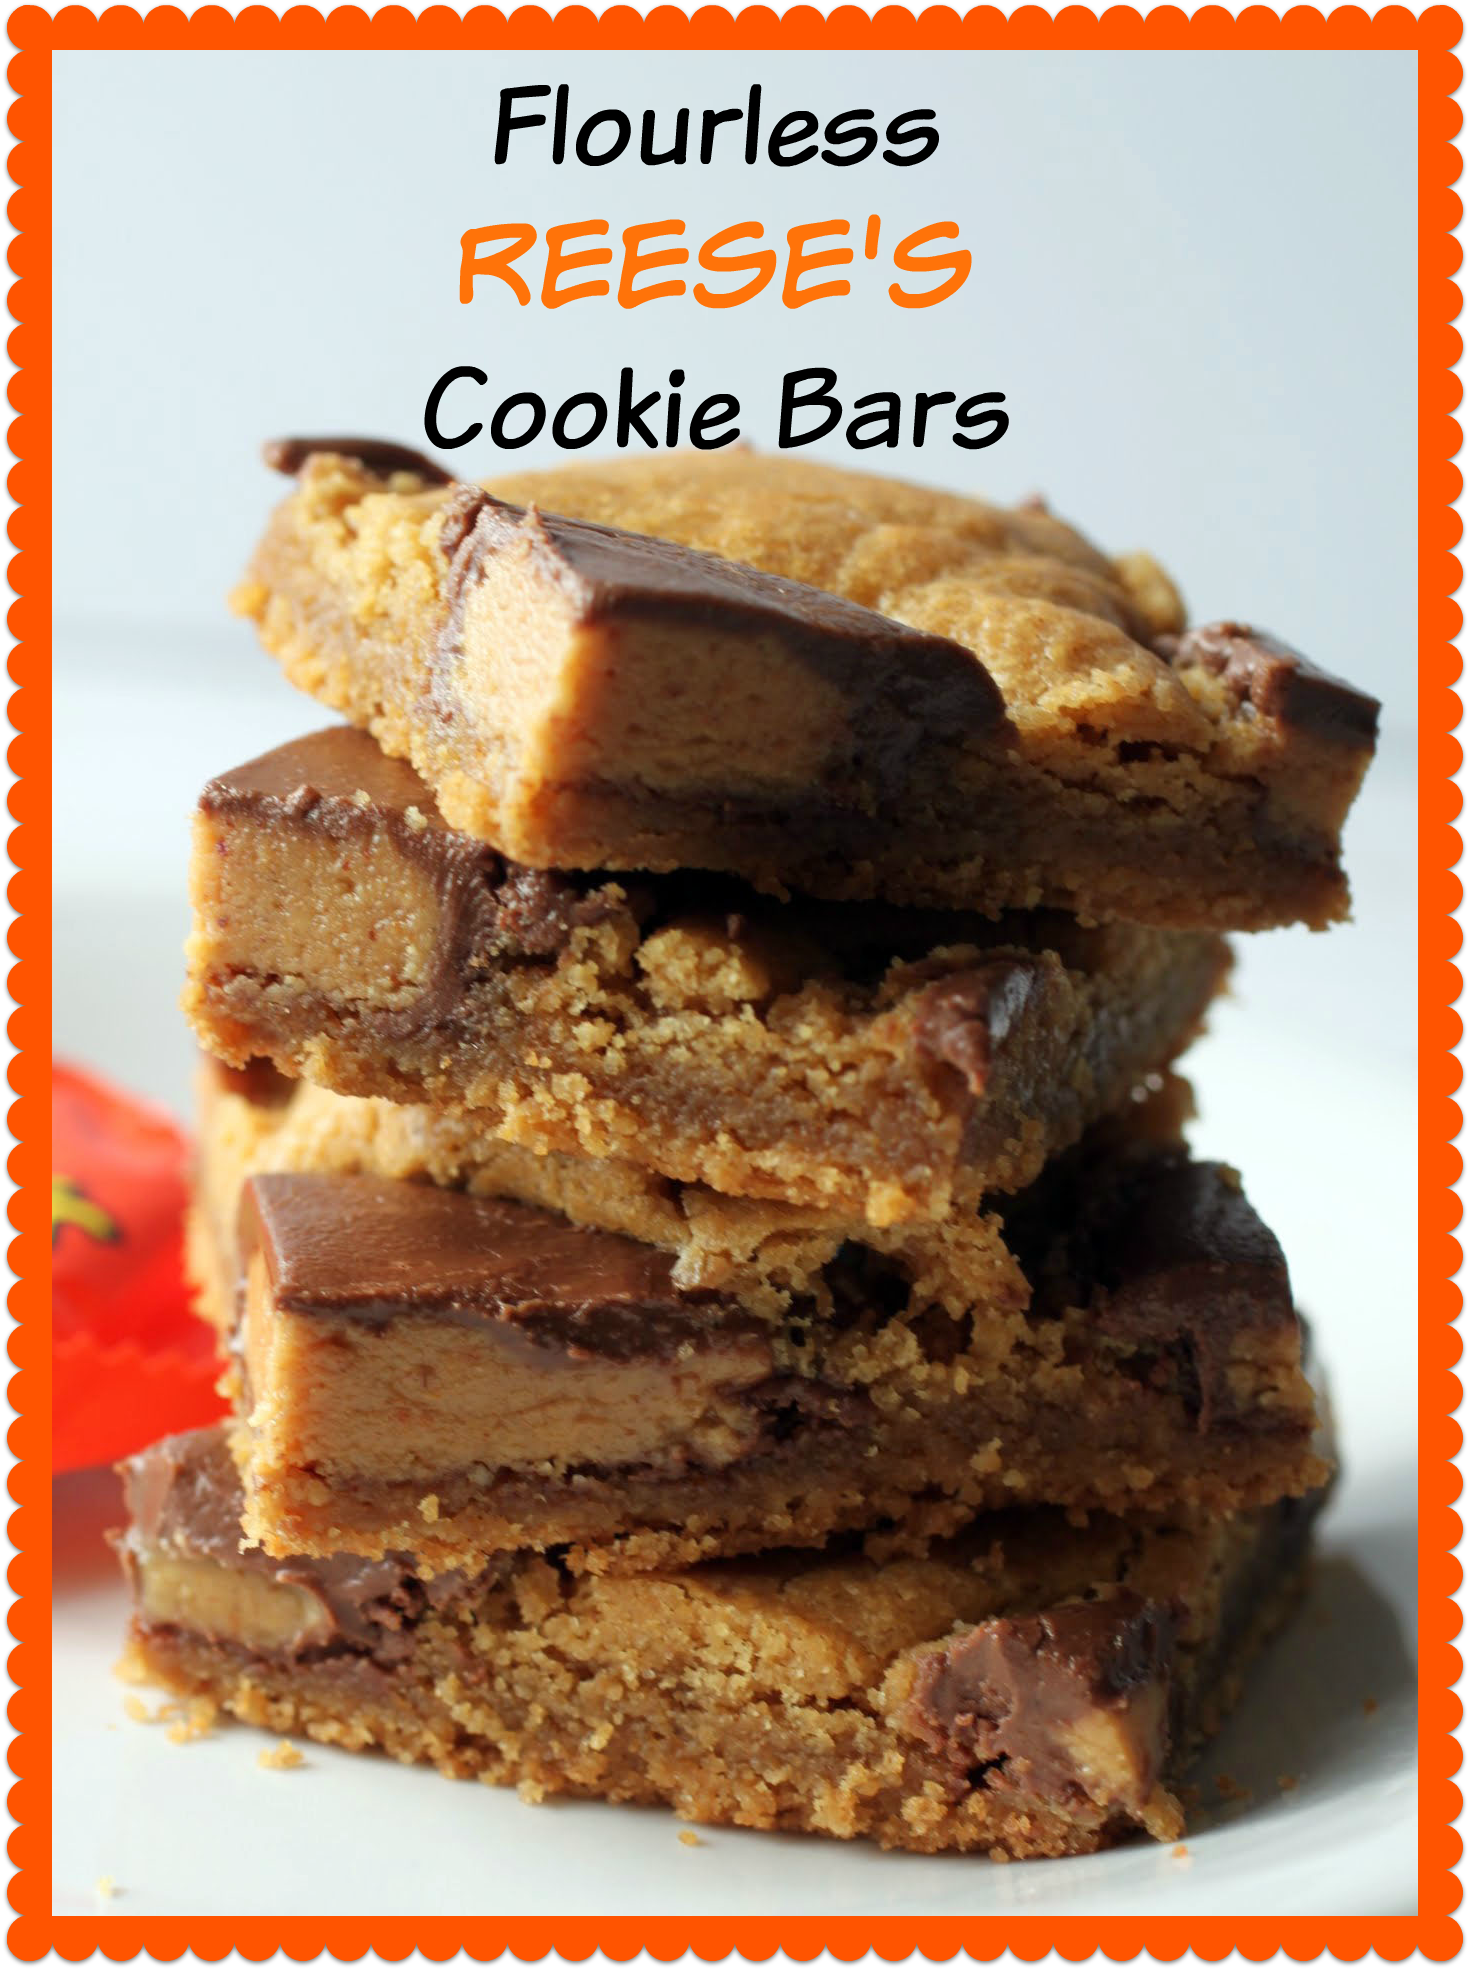 Flourless Reese's Cookie Bars